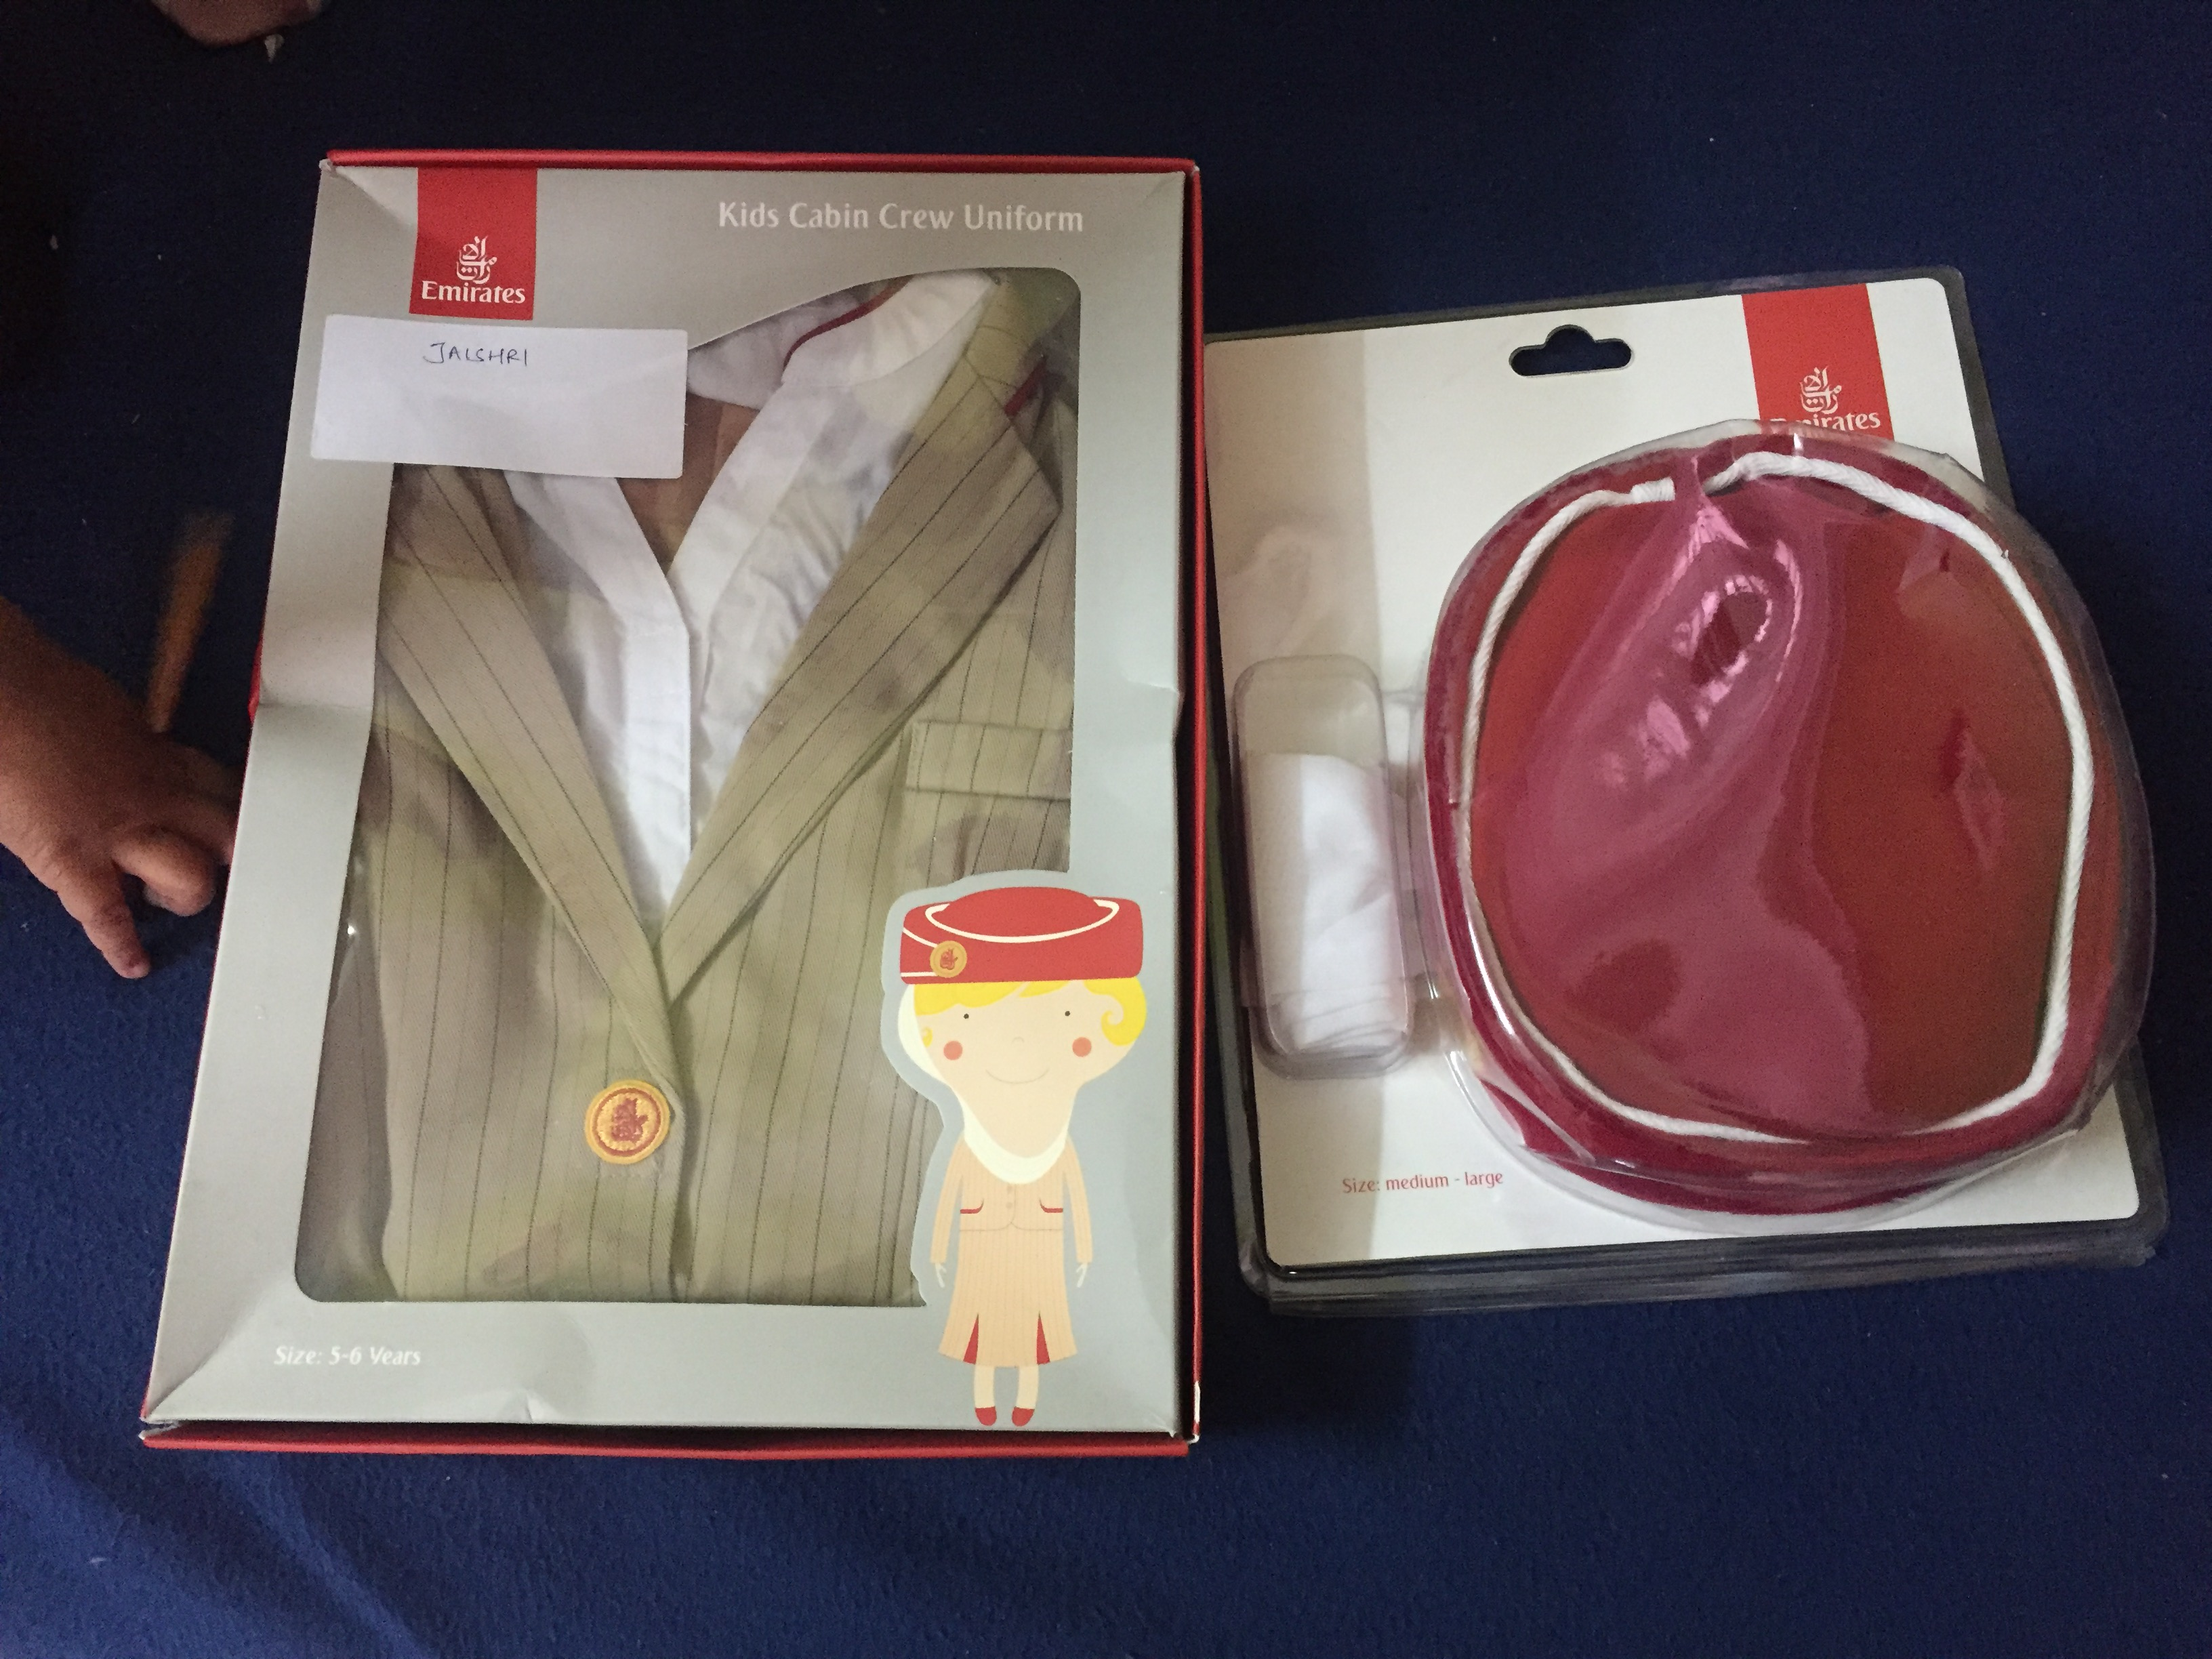 Emirates Cabin Crew And Pilot Uniform For Kids Mommyswall